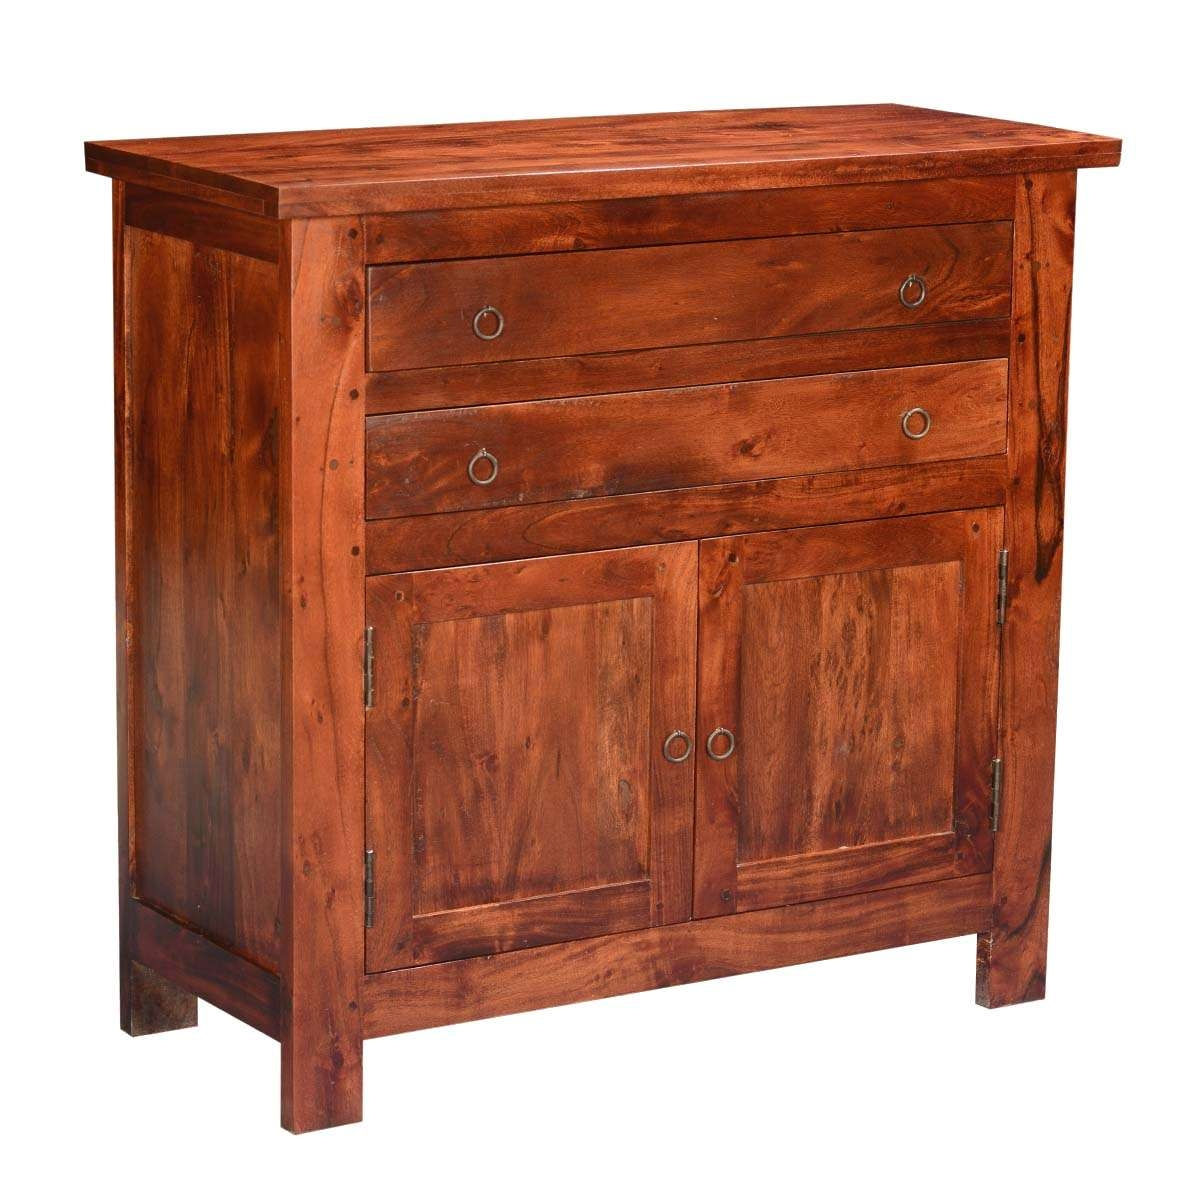 Classic Acacia Wood Buffet Sideboard Cabinet Within Mission Style Sideboards (View 7 of 20)